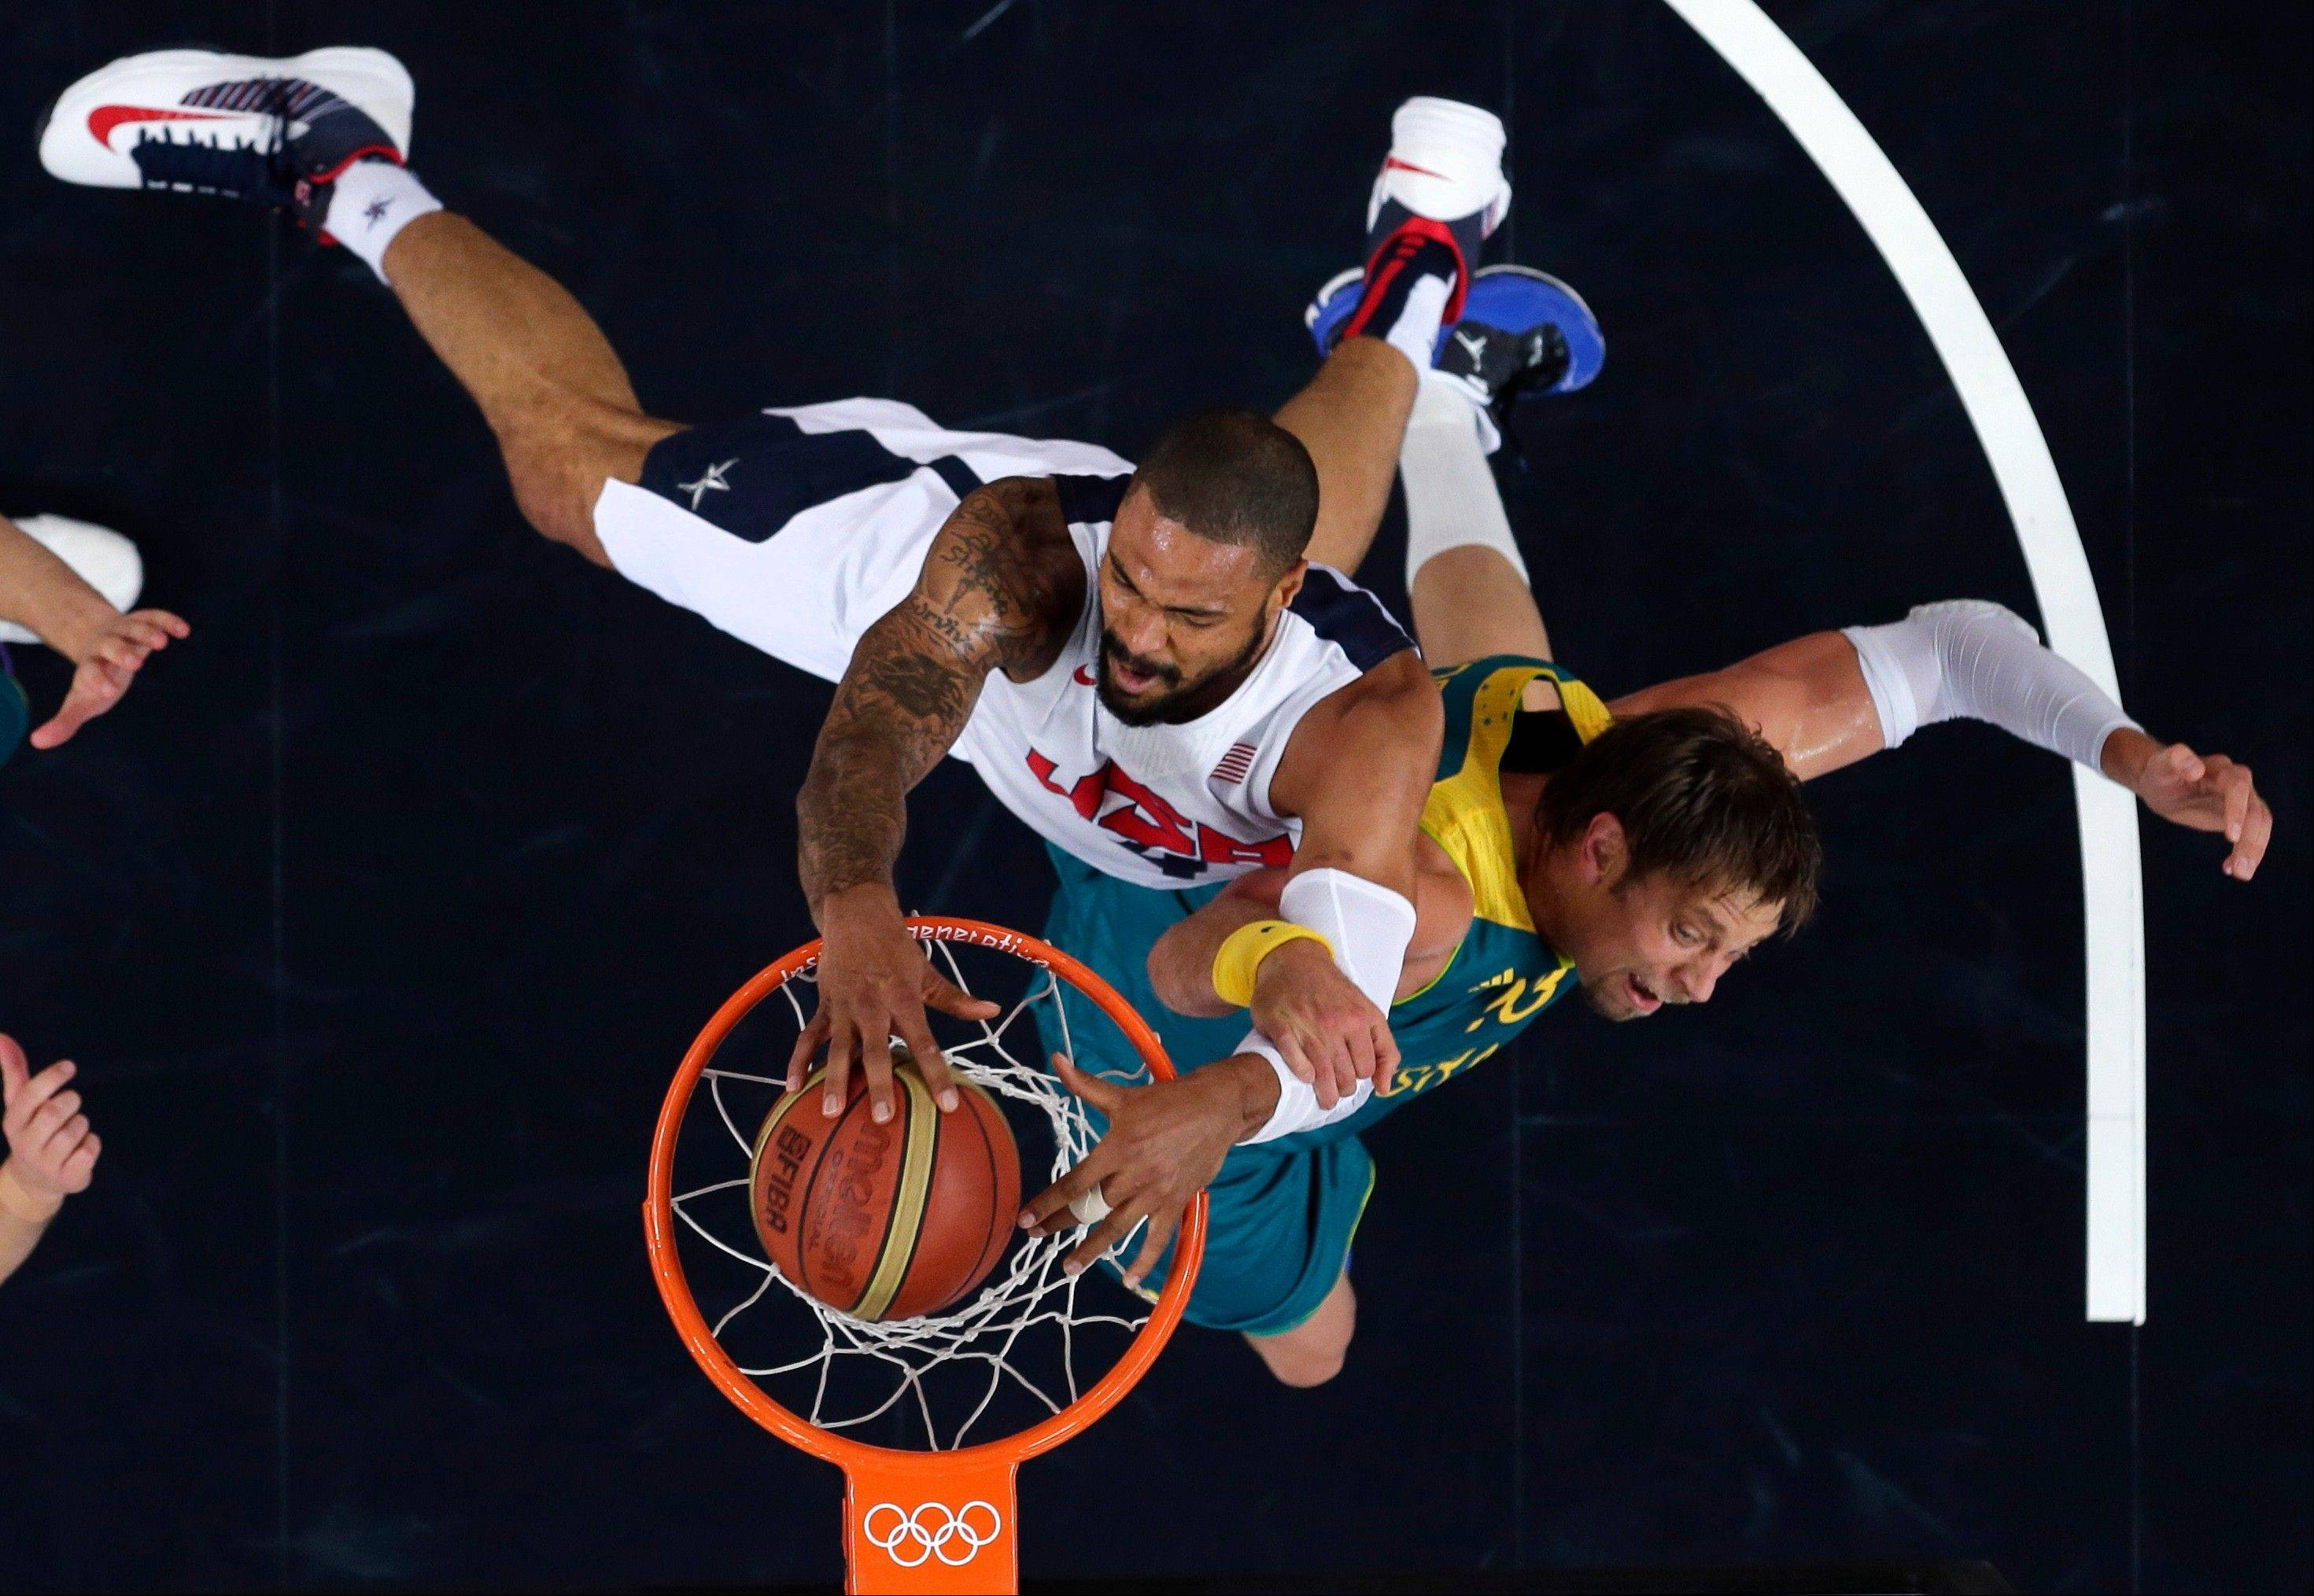 USA's Tyson Chandler slams a dunk against Australia's David Andersen during a men's quarterfinals basketball game at the 2012 Summer Olympics, Wednesday, Aug. 8, 2012, in London.